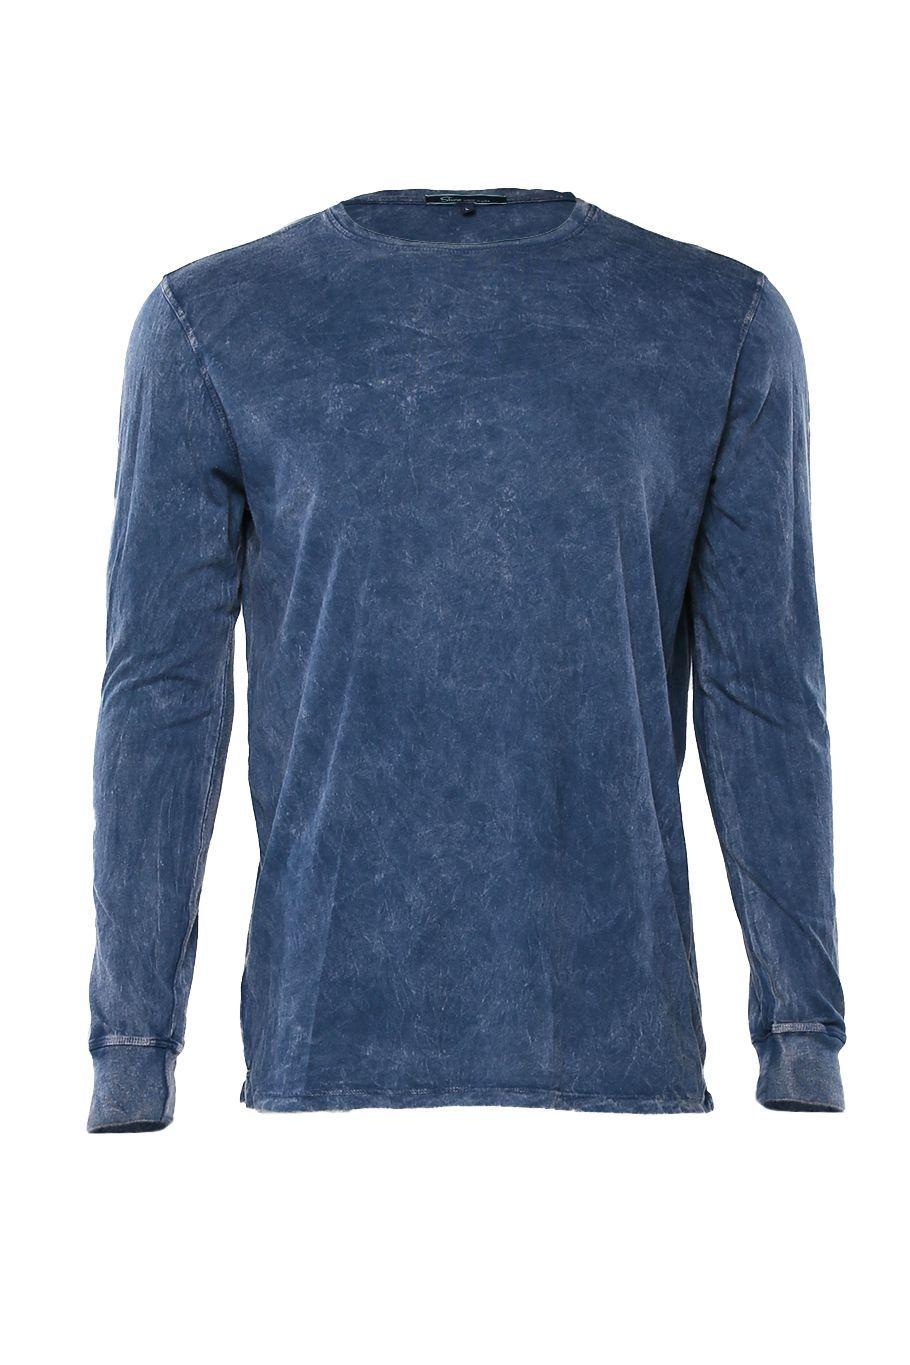 Long Sleeve Crew Tee - Navy Mineral